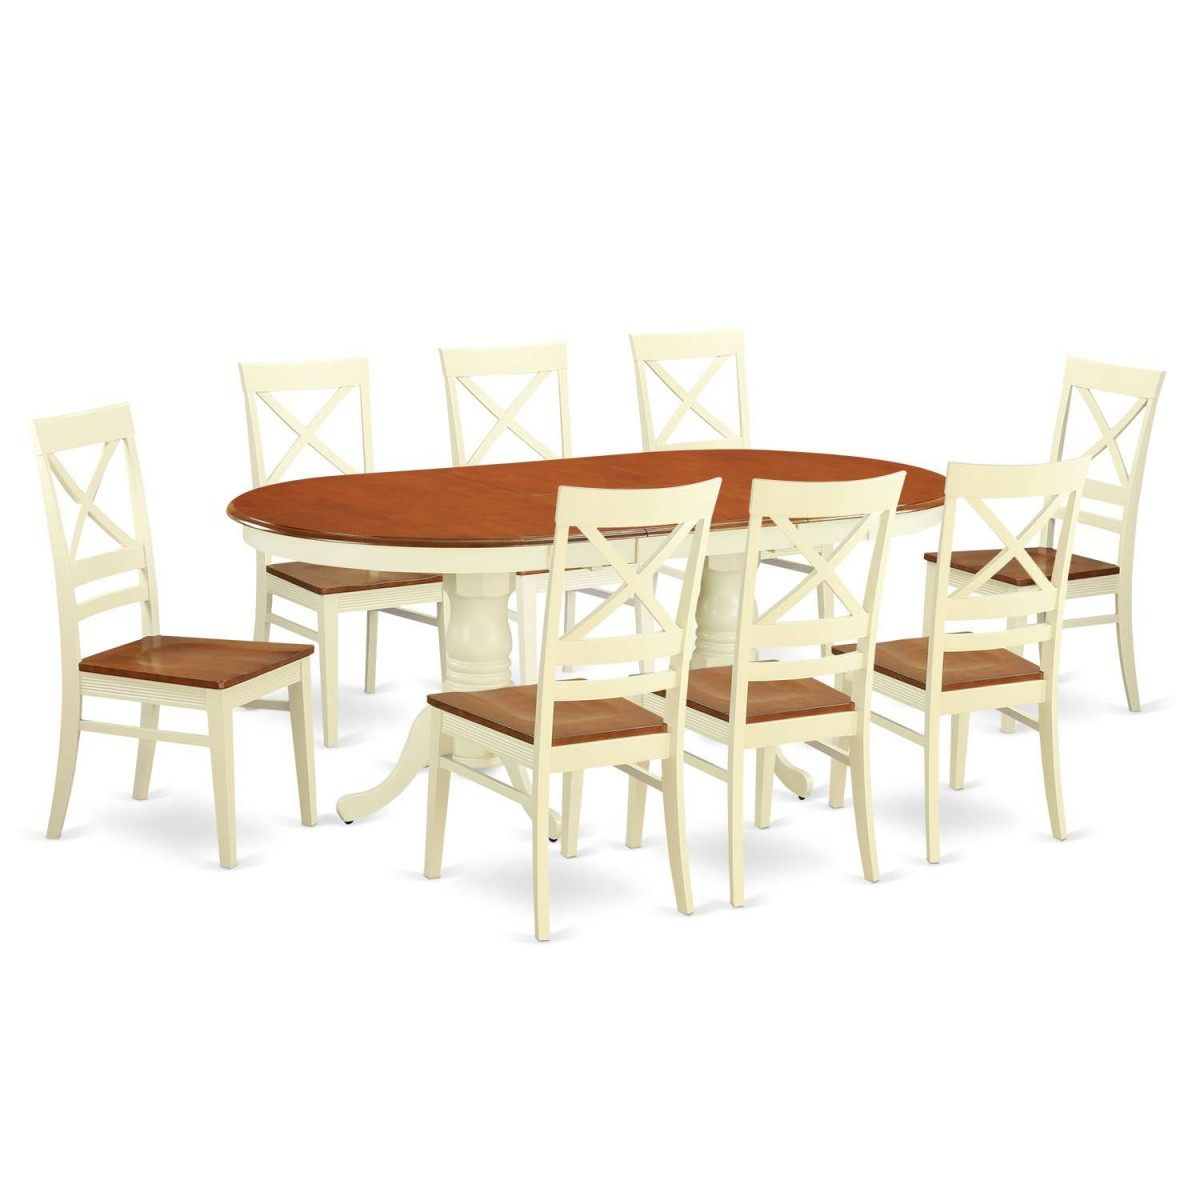 9 Piece Solid Wood Dining Set With Table And 8 Chairs: East West Furniture Plainville 9 Piece Dining Table Set